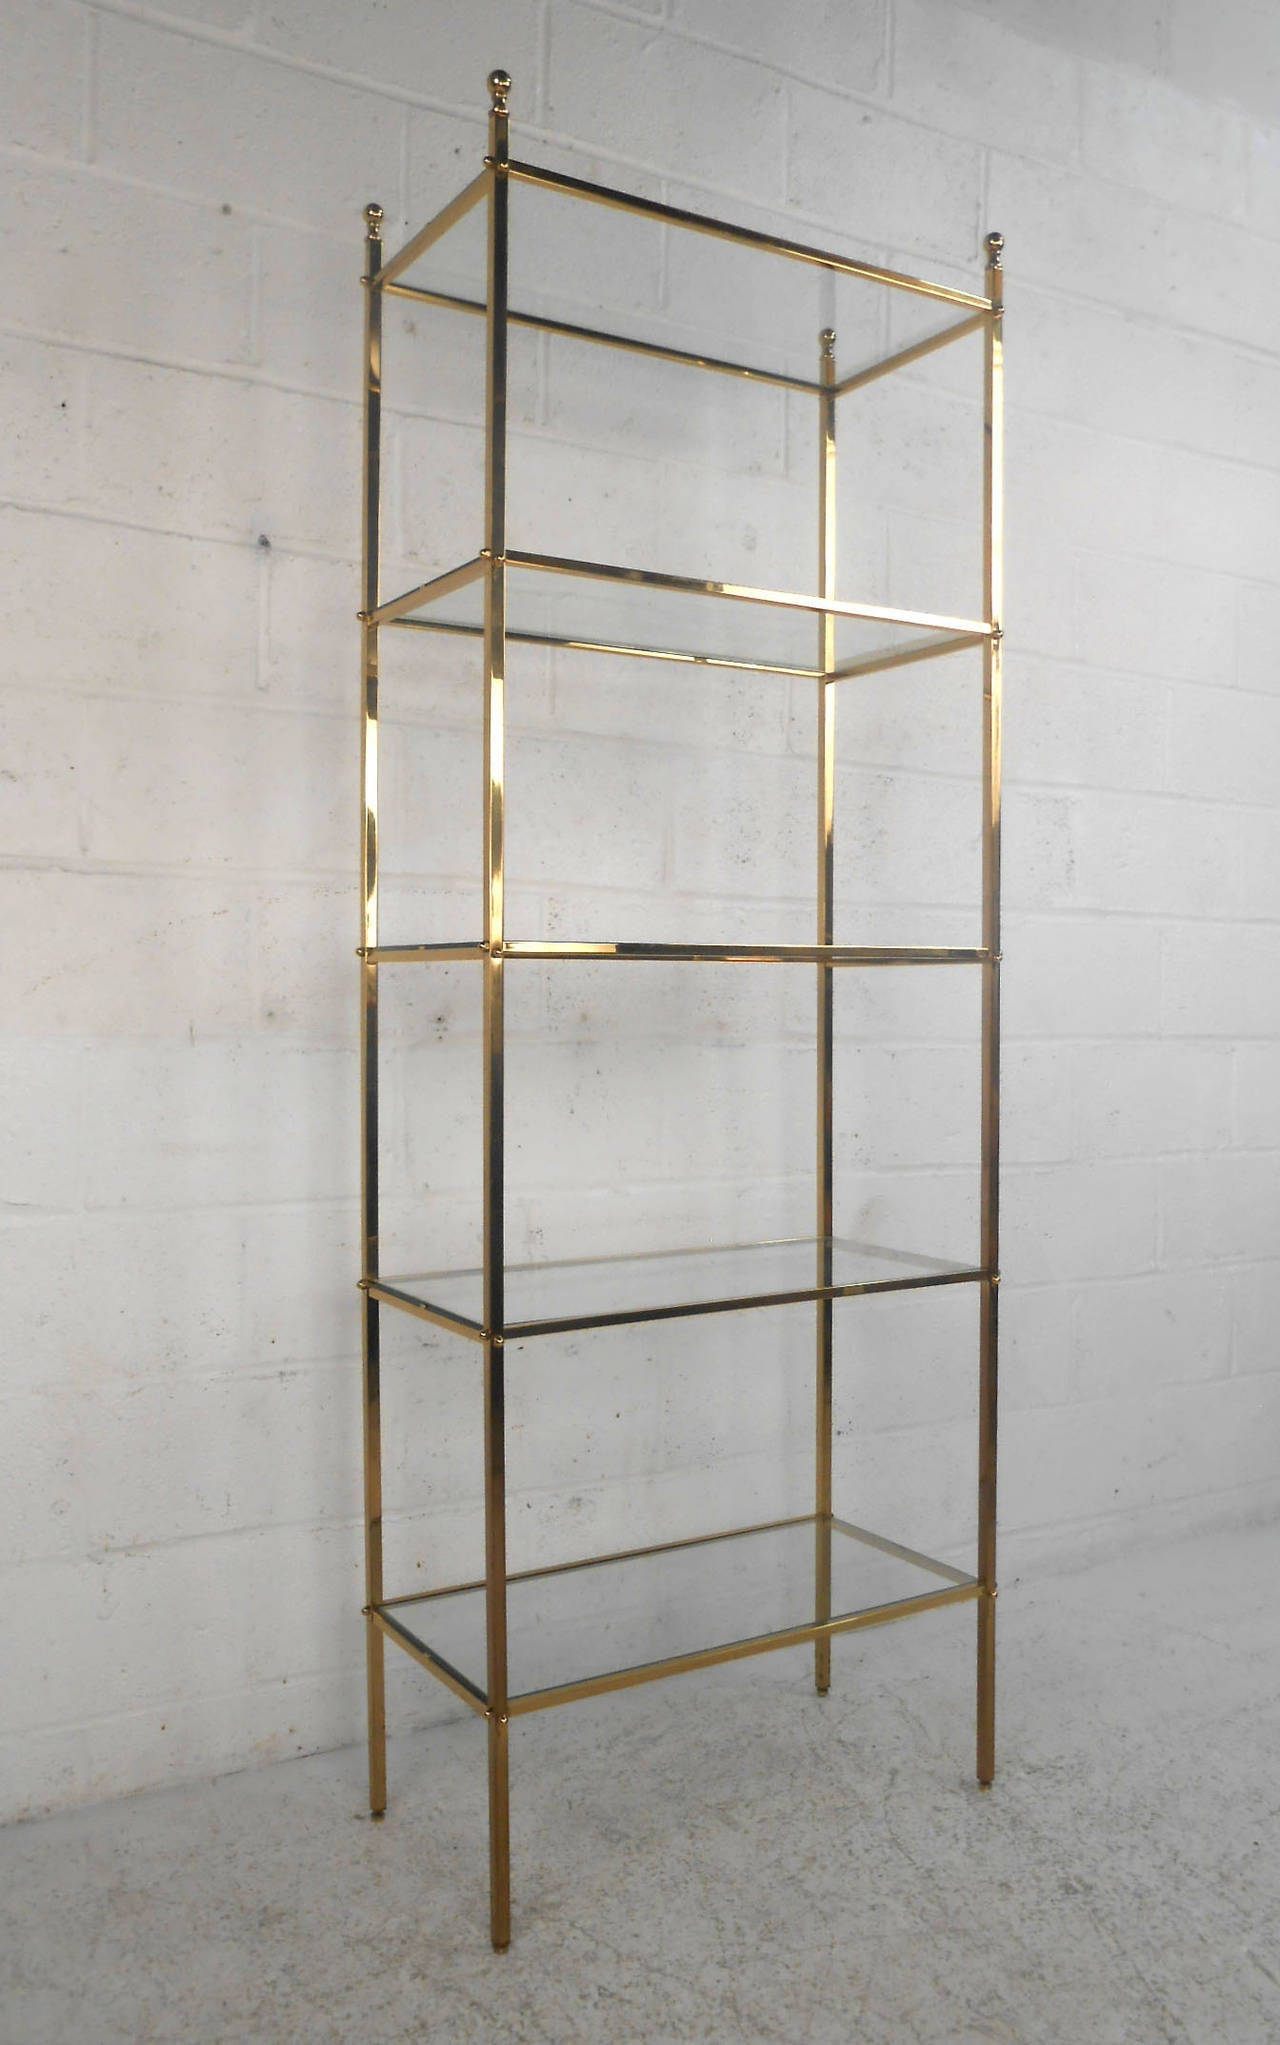 midcentury modern brass etagere glass shelf display at stdibs - midcentury modern brass etagere glass shelf display